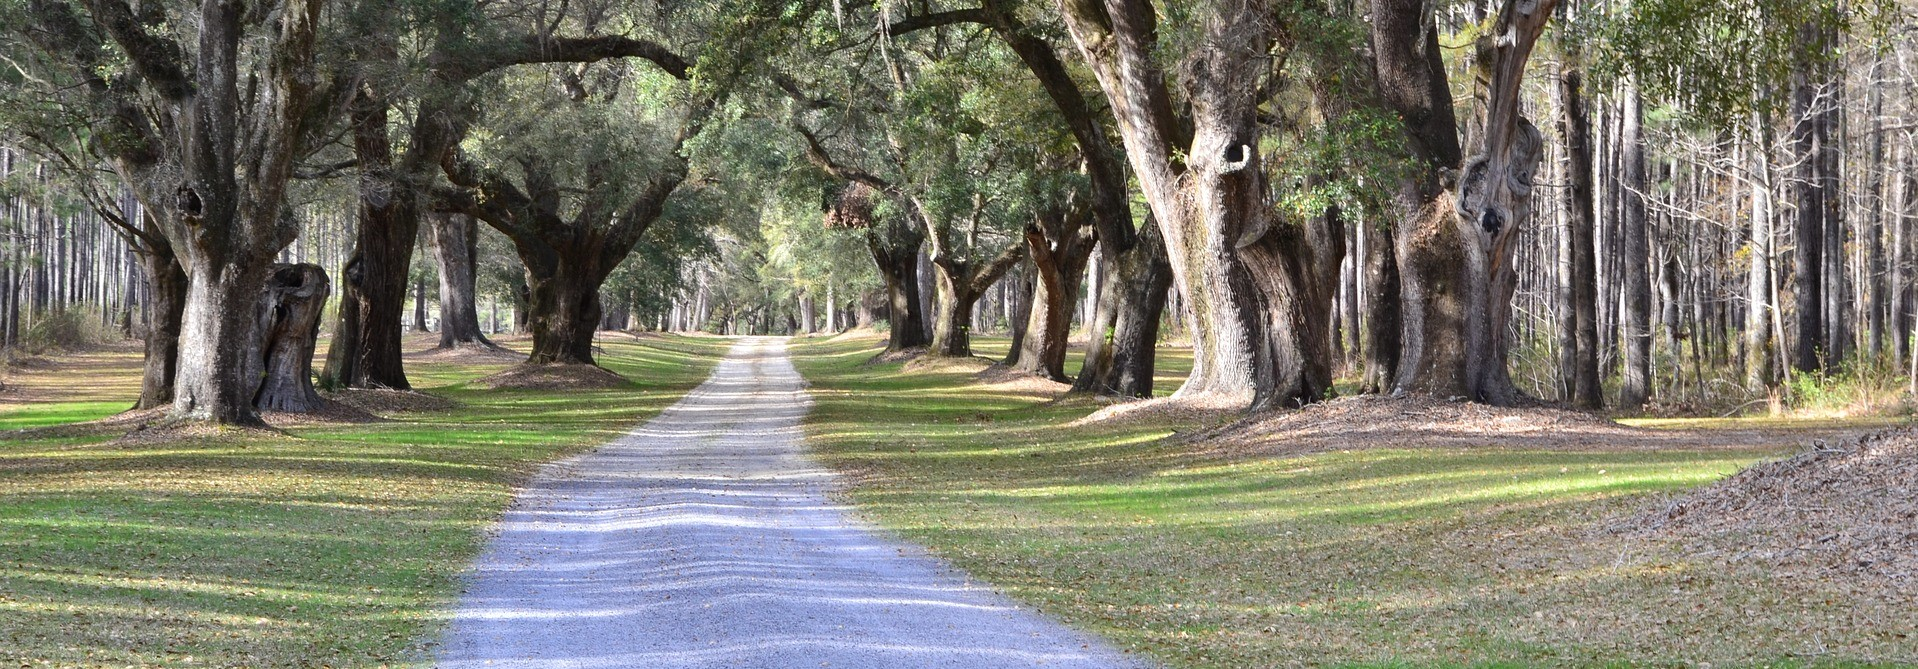 Oak Trees in South Carolina - CarDonations4Cancer.org